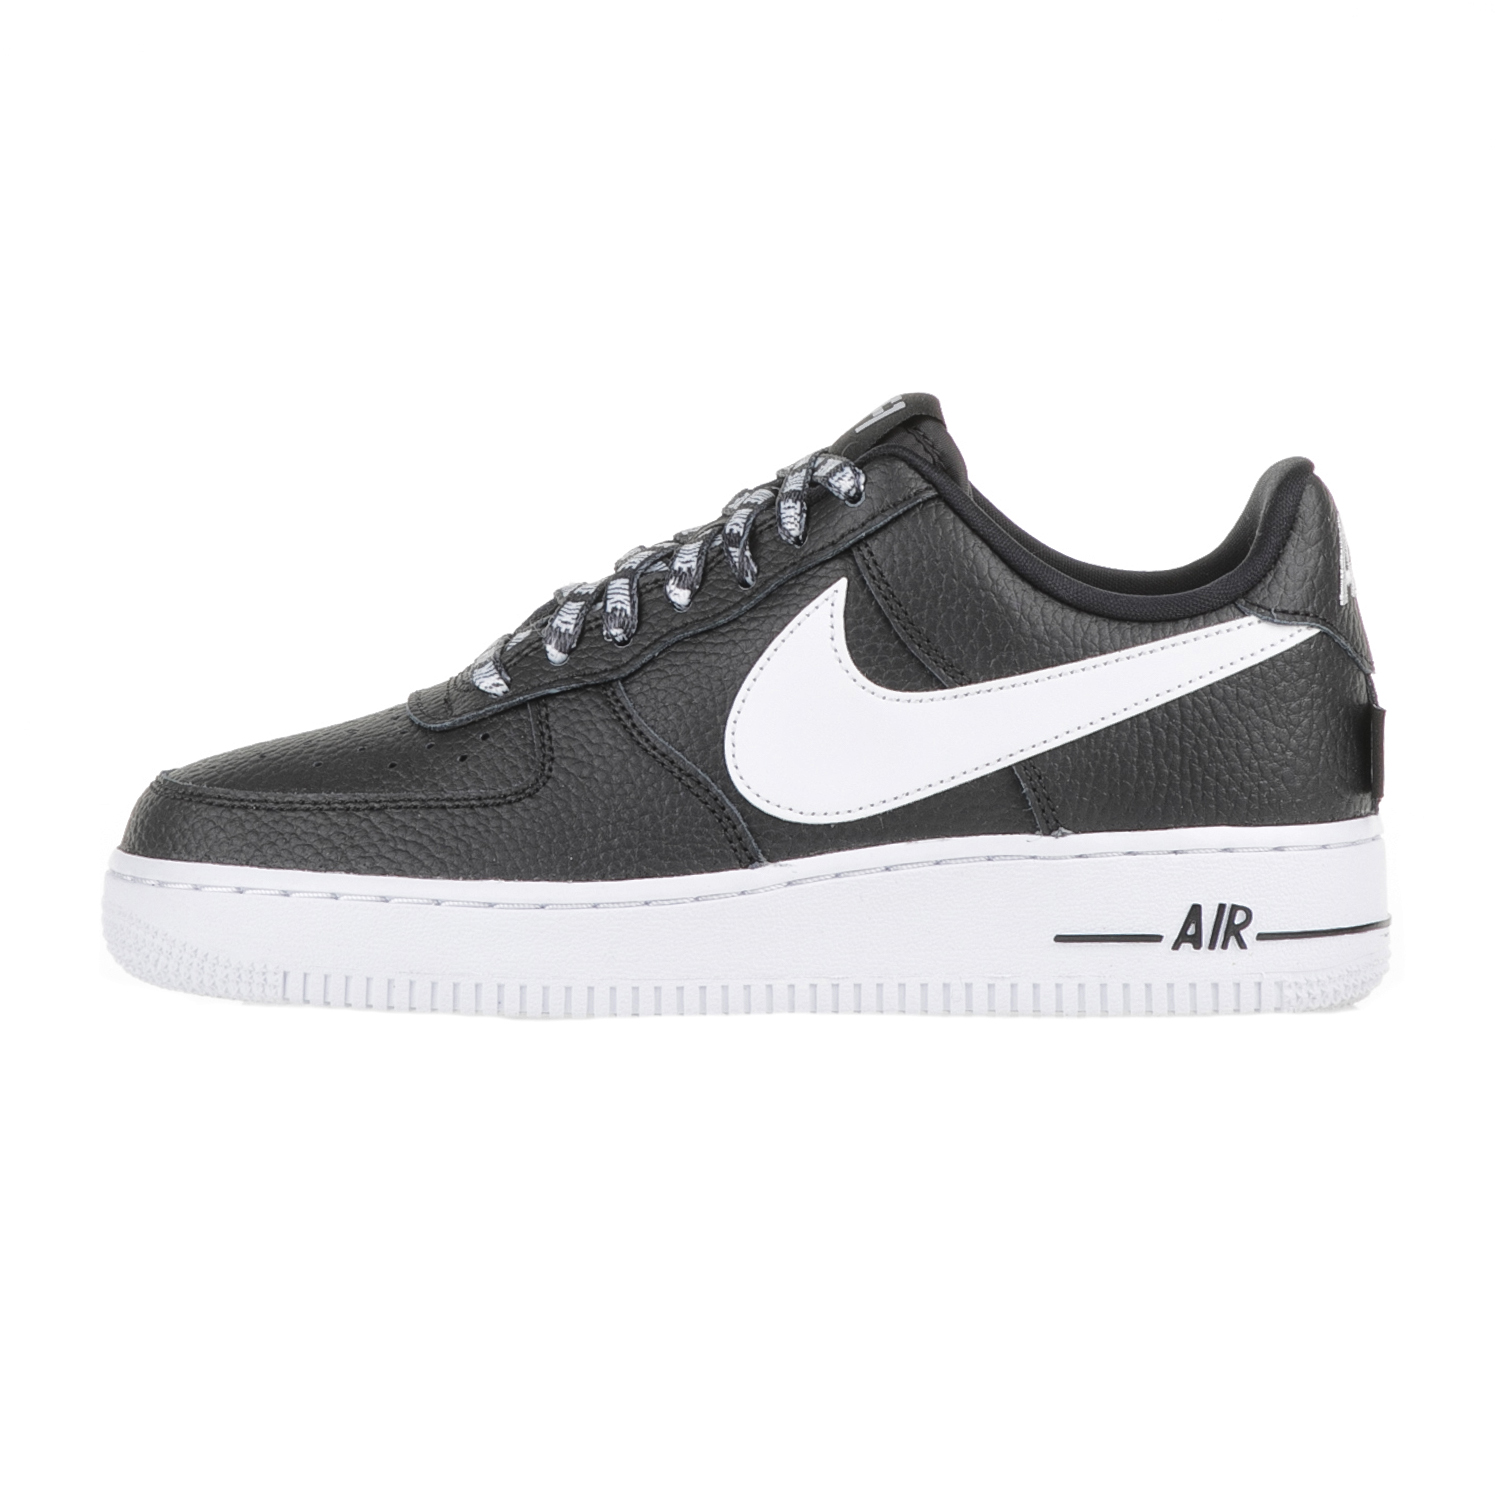 NIKE – Ανδρικά sneakers NIKE AIR FORCE 1 '07 LV8 μαύρα